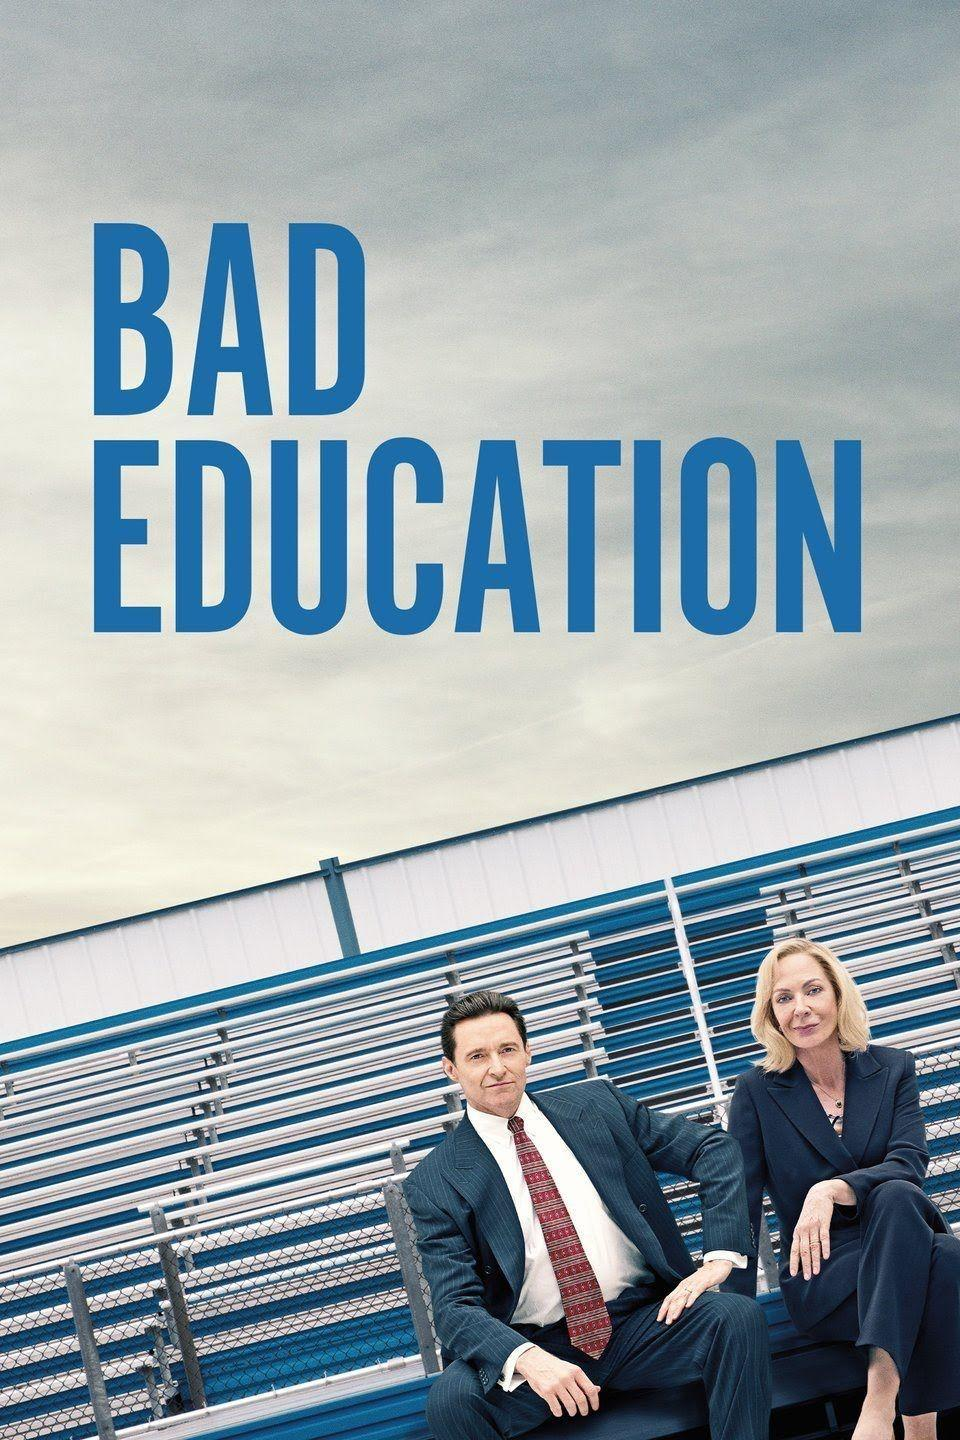 """<p><a class=""""link rapid-noclick-resp"""" href=""""https://www.amazon.com/Bad-Education-Ray-Romano/dp/B087HB16L1/ref=sr_1_1?crid=3GHRKW2B5RL9E&dchild=1&keywords=bad+education&qid=1614184415&s=instant-video&sprefix=bad+education%2Caps%2C164&sr=1-1&tag=syn-yahoo-20&ascsubtag=%5Bartid%7C10067.g.15907978%5Bsrc%7Cyahoo-us"""" rel=""""nofollow noopener"""" target=""""_blank"""" data-ylk=""""slk:Watch Now"""">Watch Now</a></p><p>Hugh Jackman and Allison Janney star in <a href=""""https://www.townandcountrymag.com/leisure/arts-and-culture/a32291684/bad-education-hbo-true-story-frank-tassone-pamela-gluckin/"""" rel=""""nofollow noopener"""" target=""""_blank"""" data-ylk=""""slk:this true story tale"""" class=""""link rapid-noclick-resp"""">this true story tale</a> about the largest public school embezzlement in U.S. history that took place in a tony Long Island suburb. Jackman plays Frank Tassone, a charismatic superintendent who, with his associate Pamela Gluckin (Janney), stole $11.2 million from the school budget to finance a Park Avenue apartment, trips to Vegas, expensive suits and cars, and plastic surgery, among other things.</p>"""